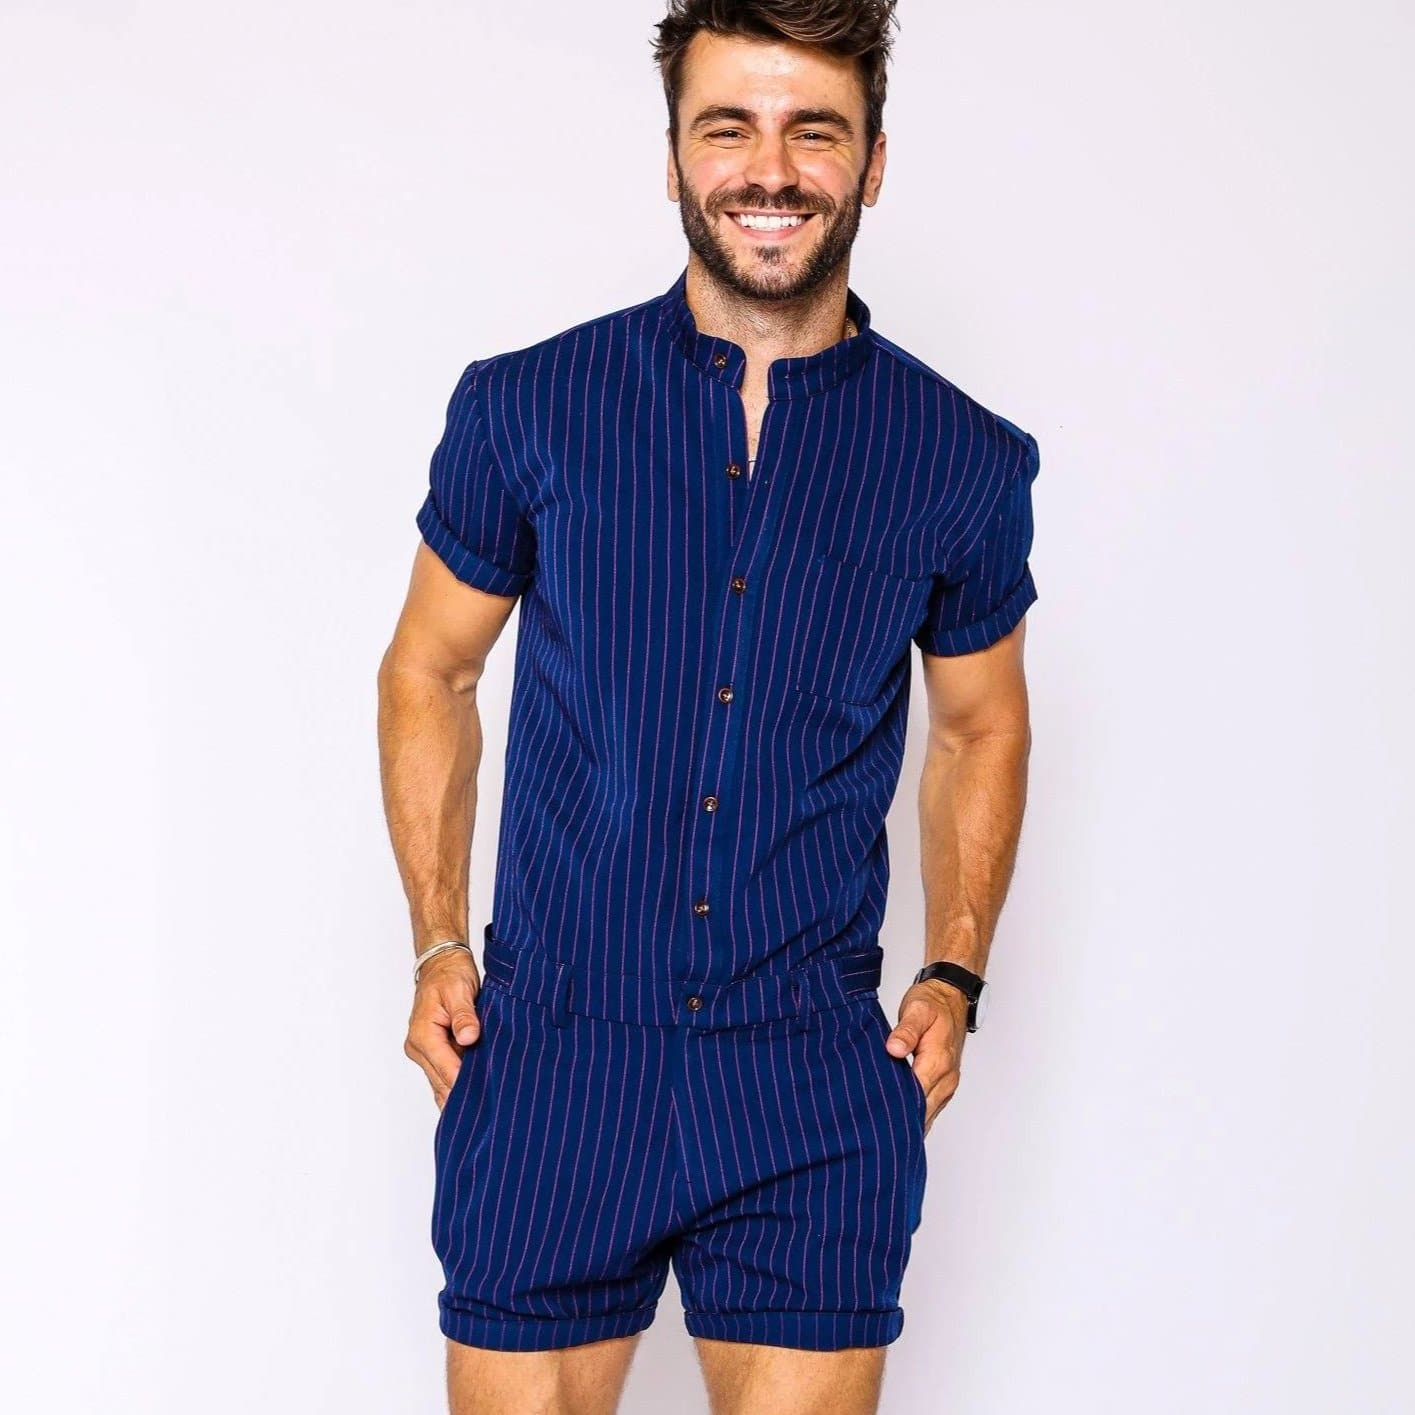 Navy Chateaux Romper - RomperJack, Men's Romper - Male Romper